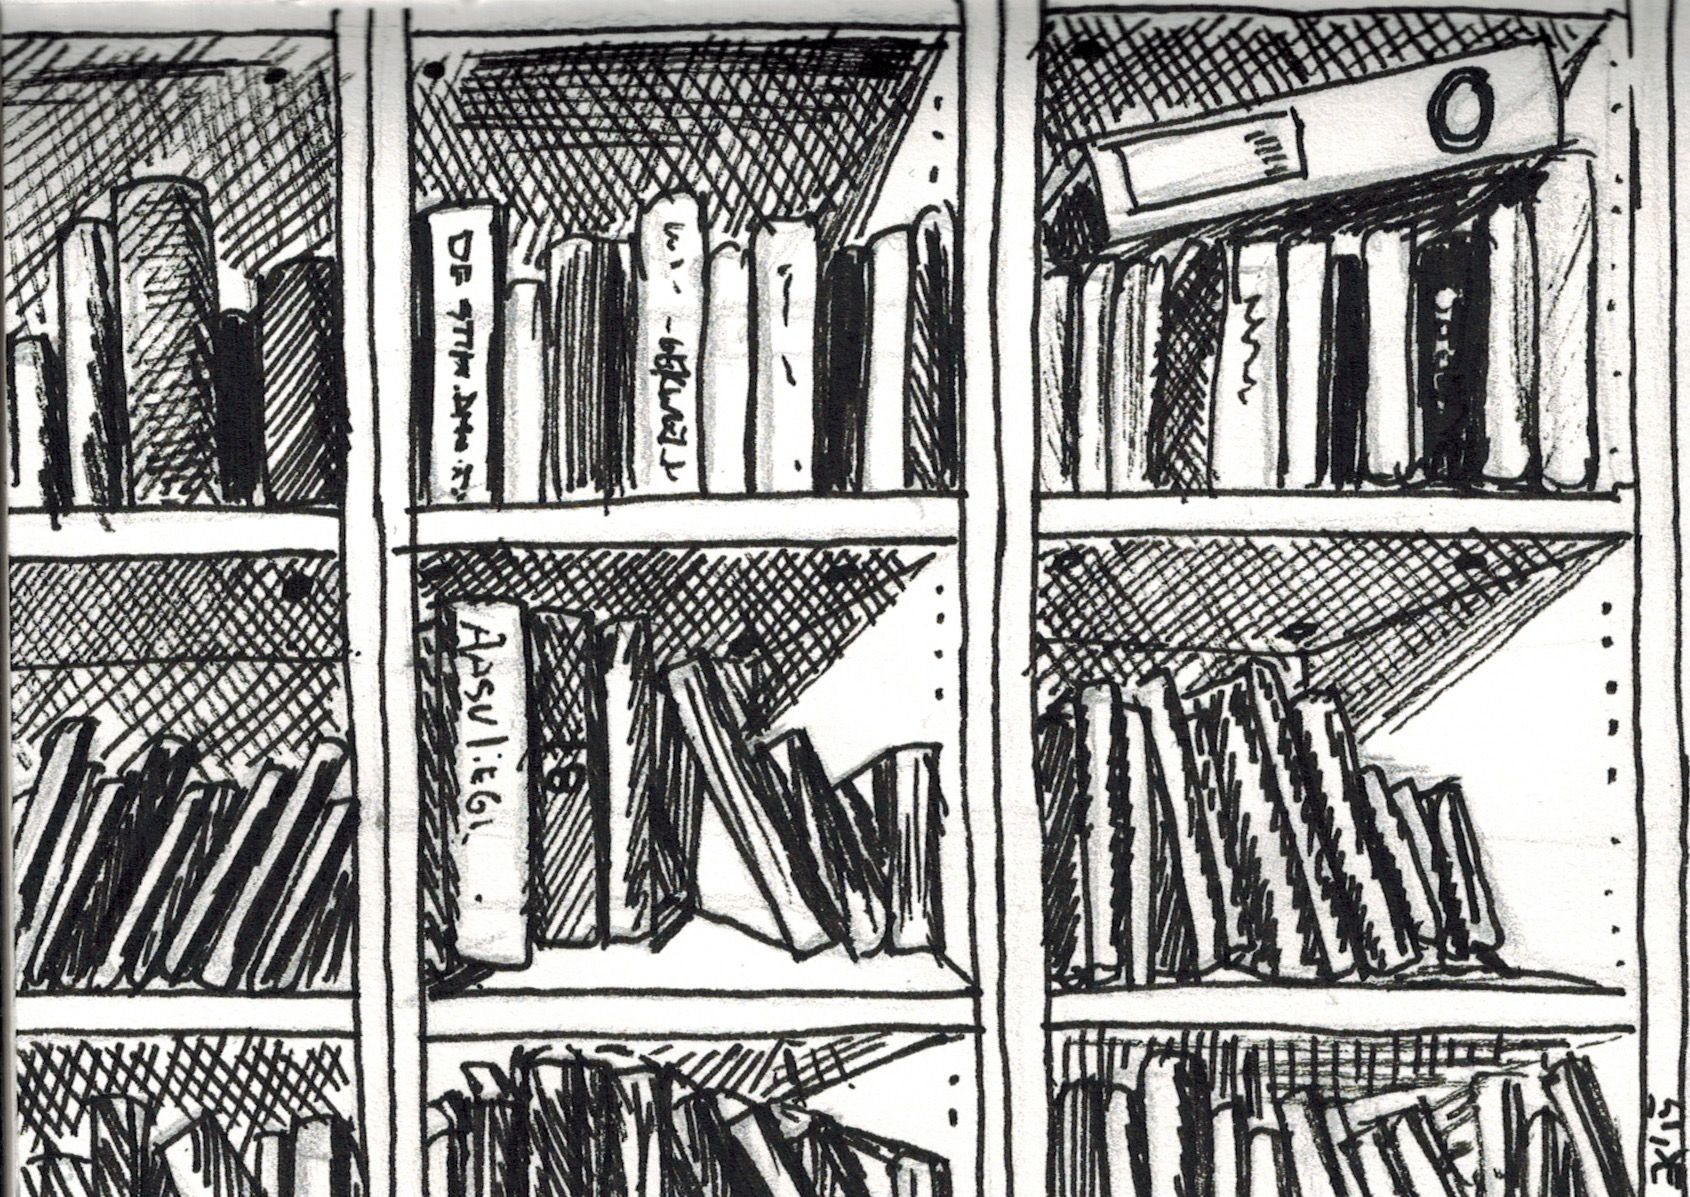 Edwardsdailydrawing 287 Bookshelf Sketch